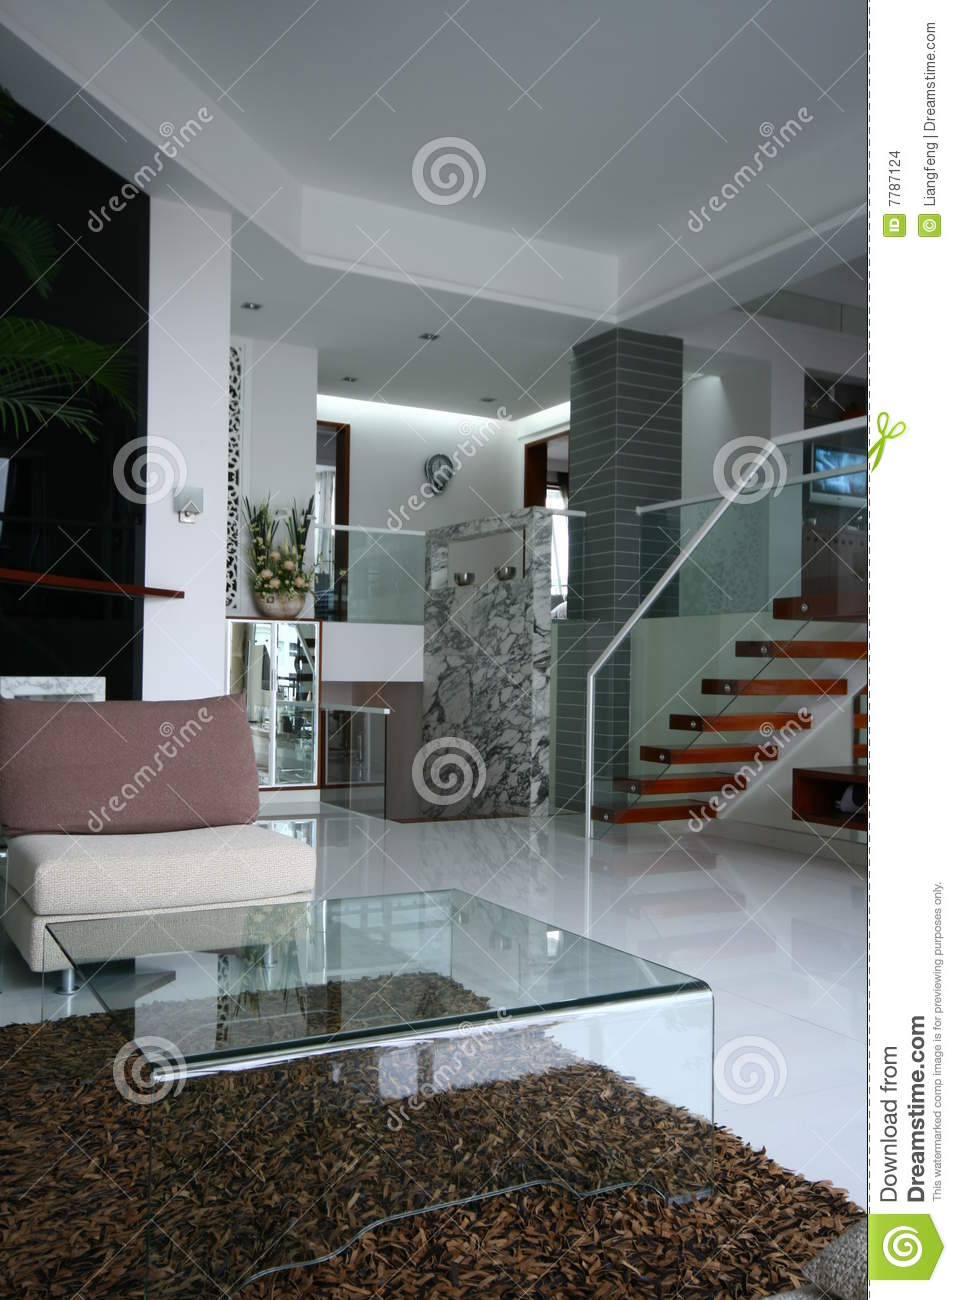 Good room decoration stock photography for Good decoration